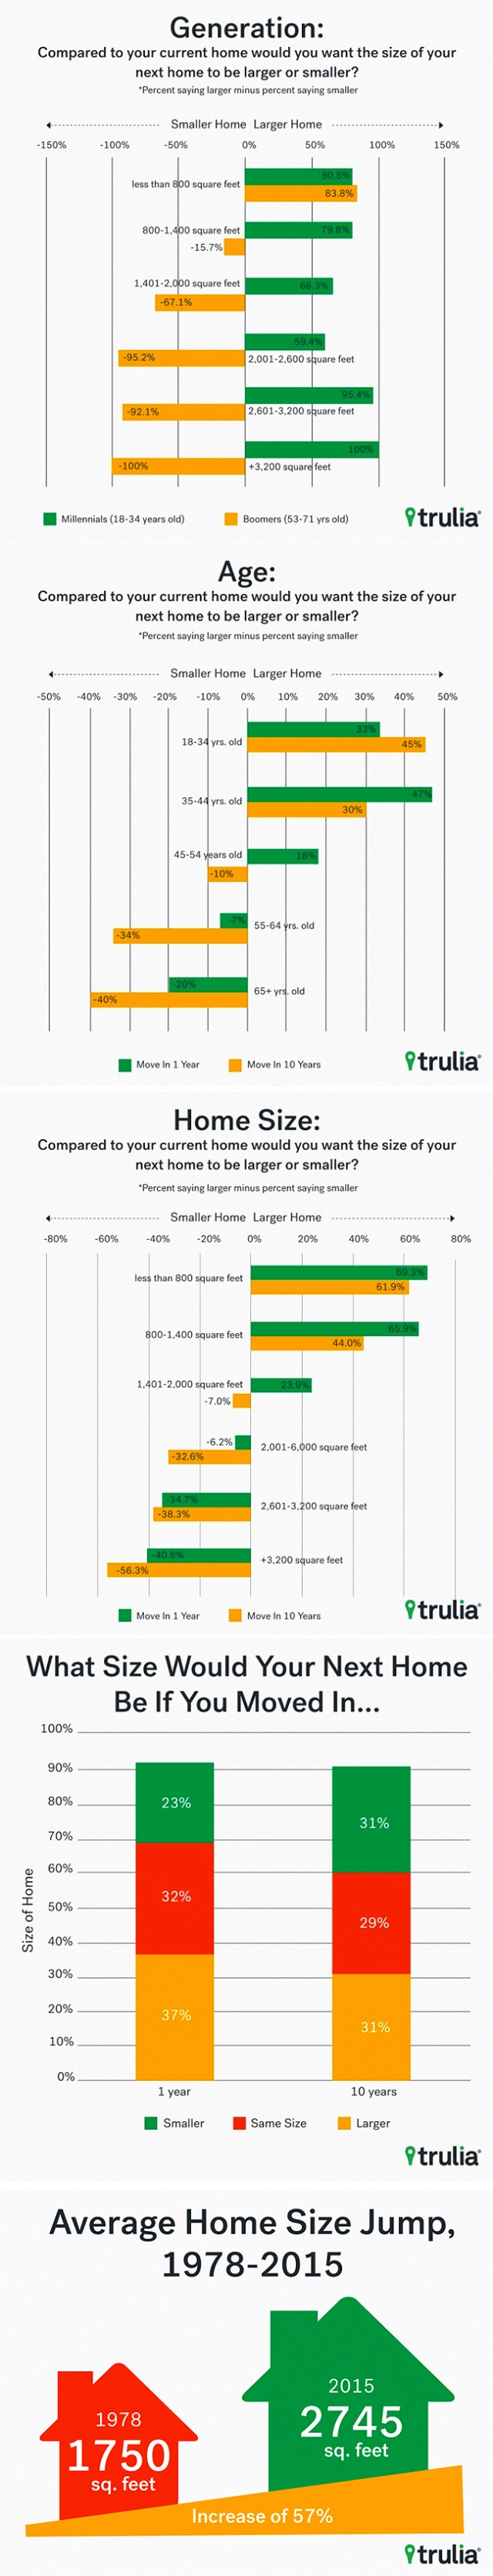 Info graphic from Trulia: Most Home Owners Dissatisfied with the size of their home - Size Matters, Home Square Footage, Buying a Small Home, Buying a Large Home - Bill Salvatore, Arizona Elite Properties 602-999-0952 - Arizona Real Estate